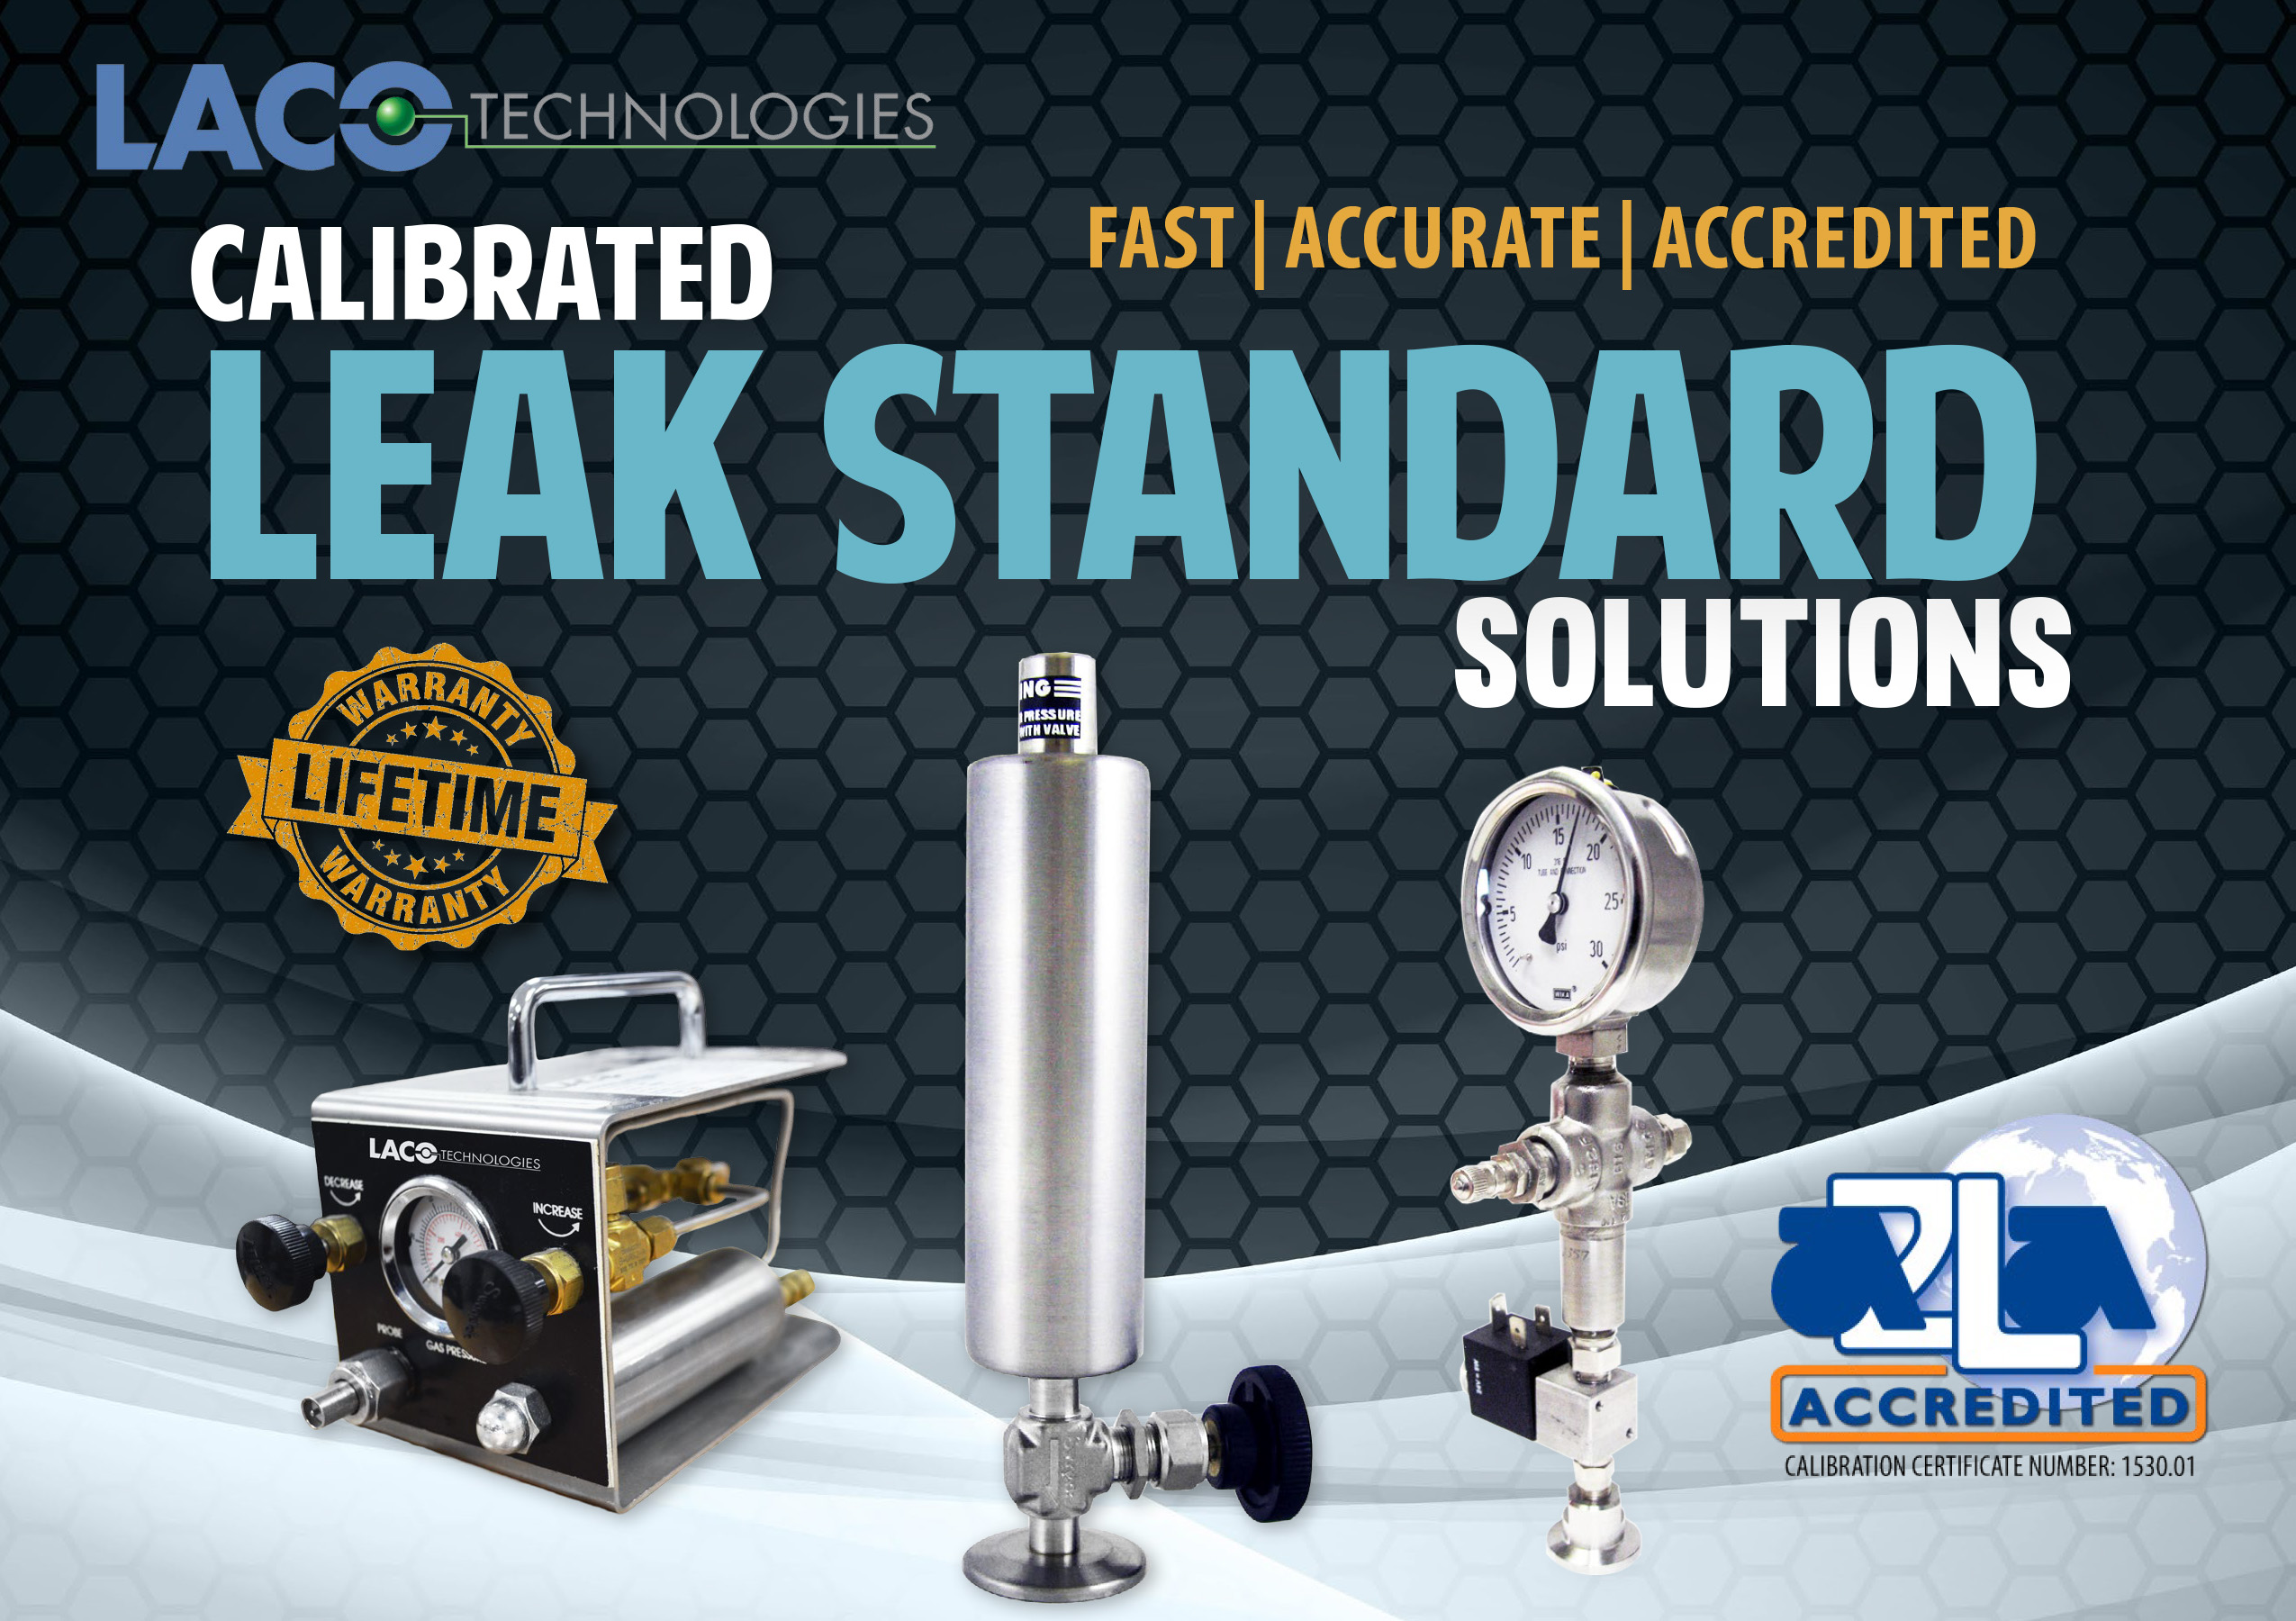 laco-calibrated-leak-standards-nist-traceable-and-a2la-accredited-to-iso-17025.jpg